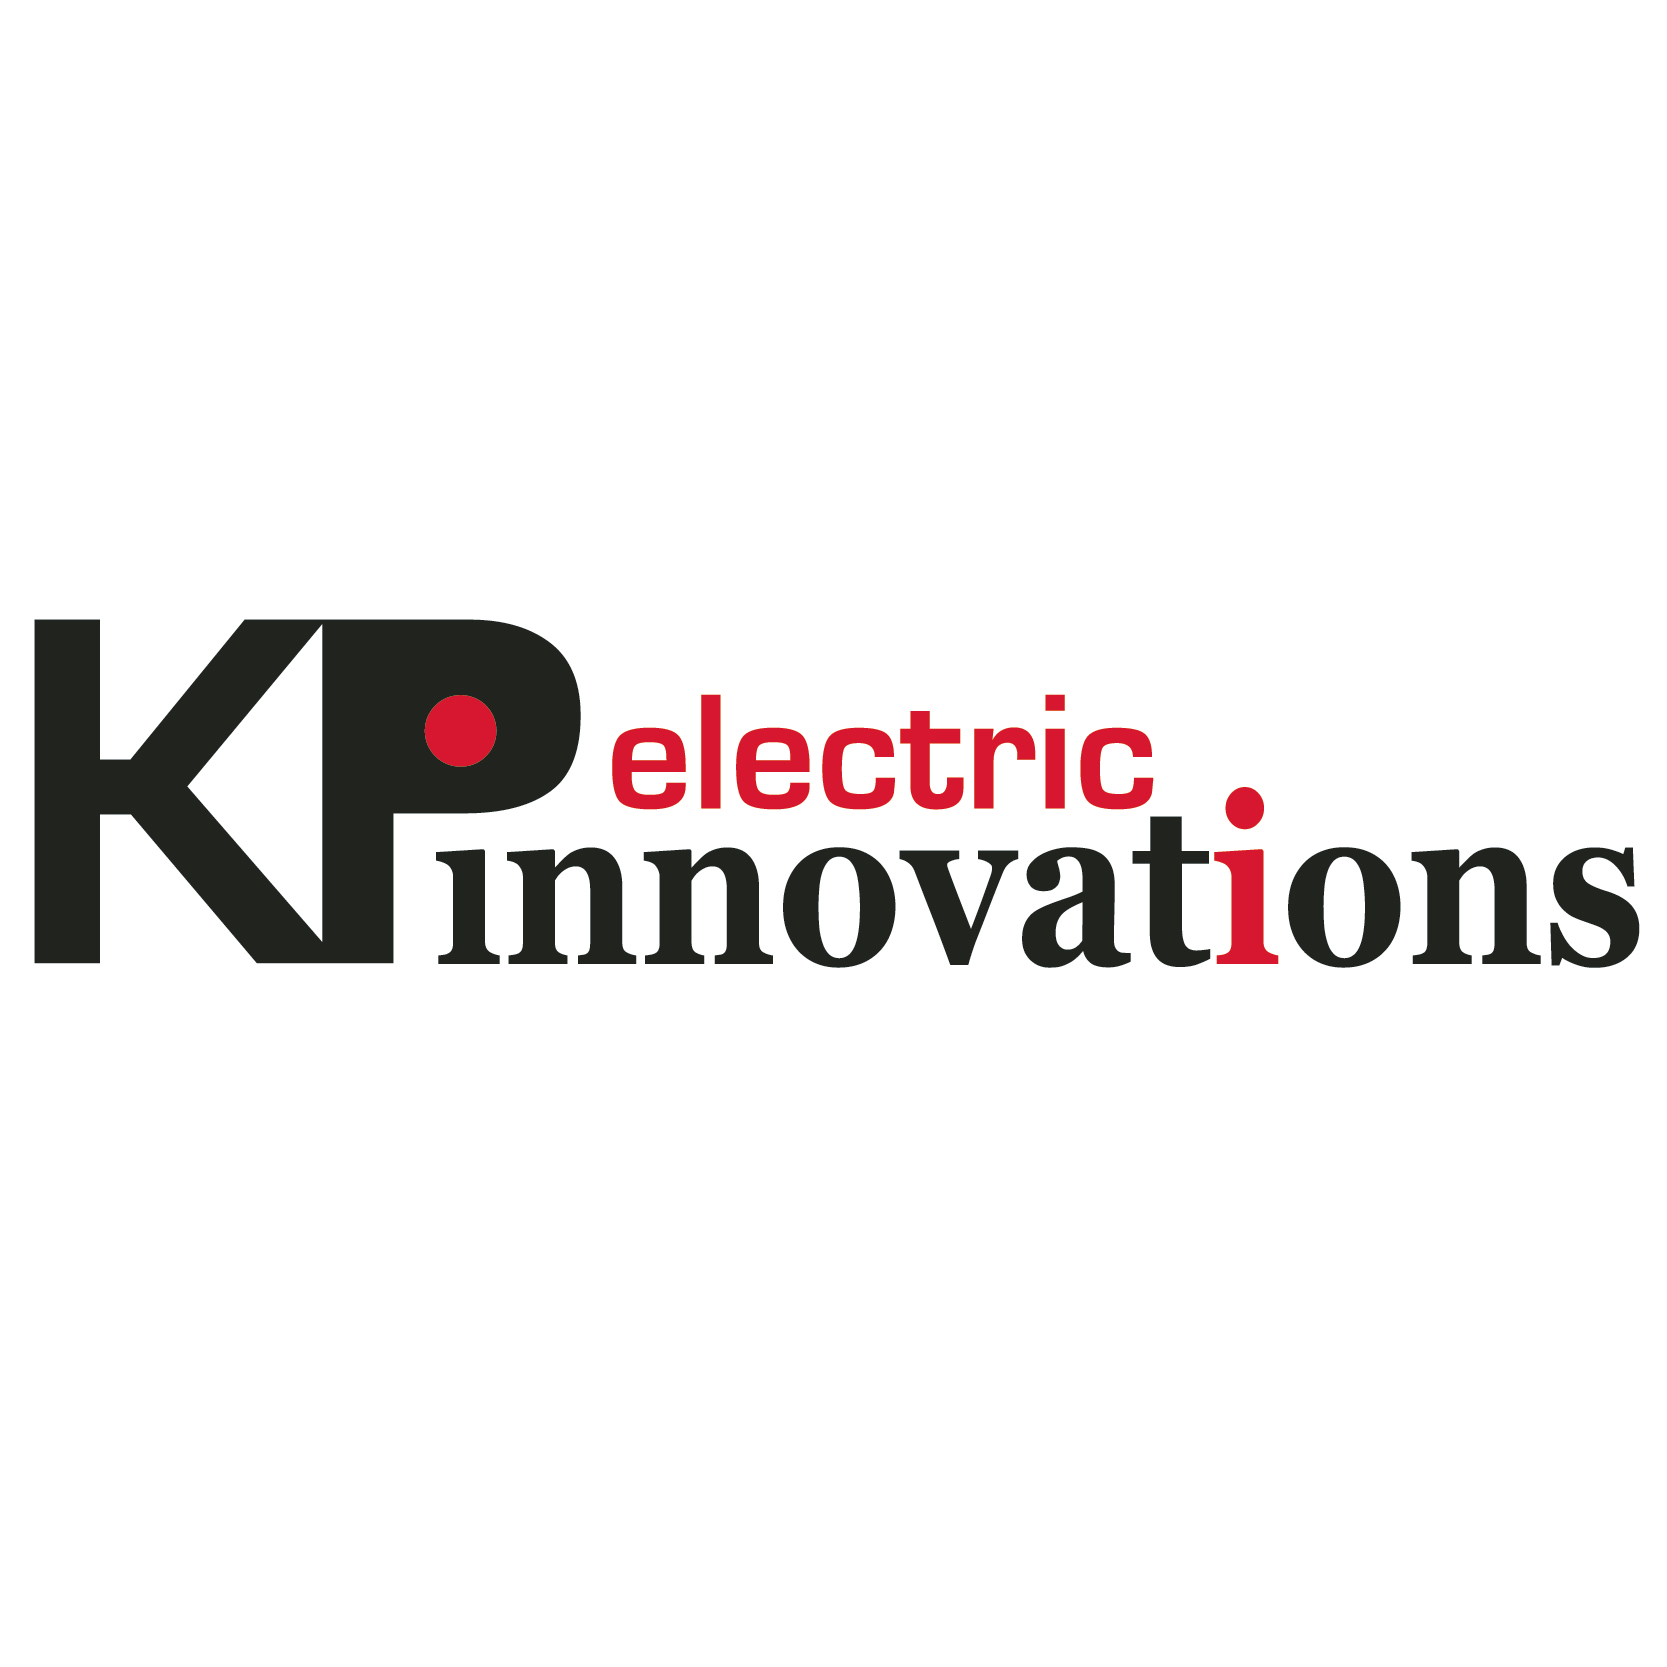 K P Electric Innovations